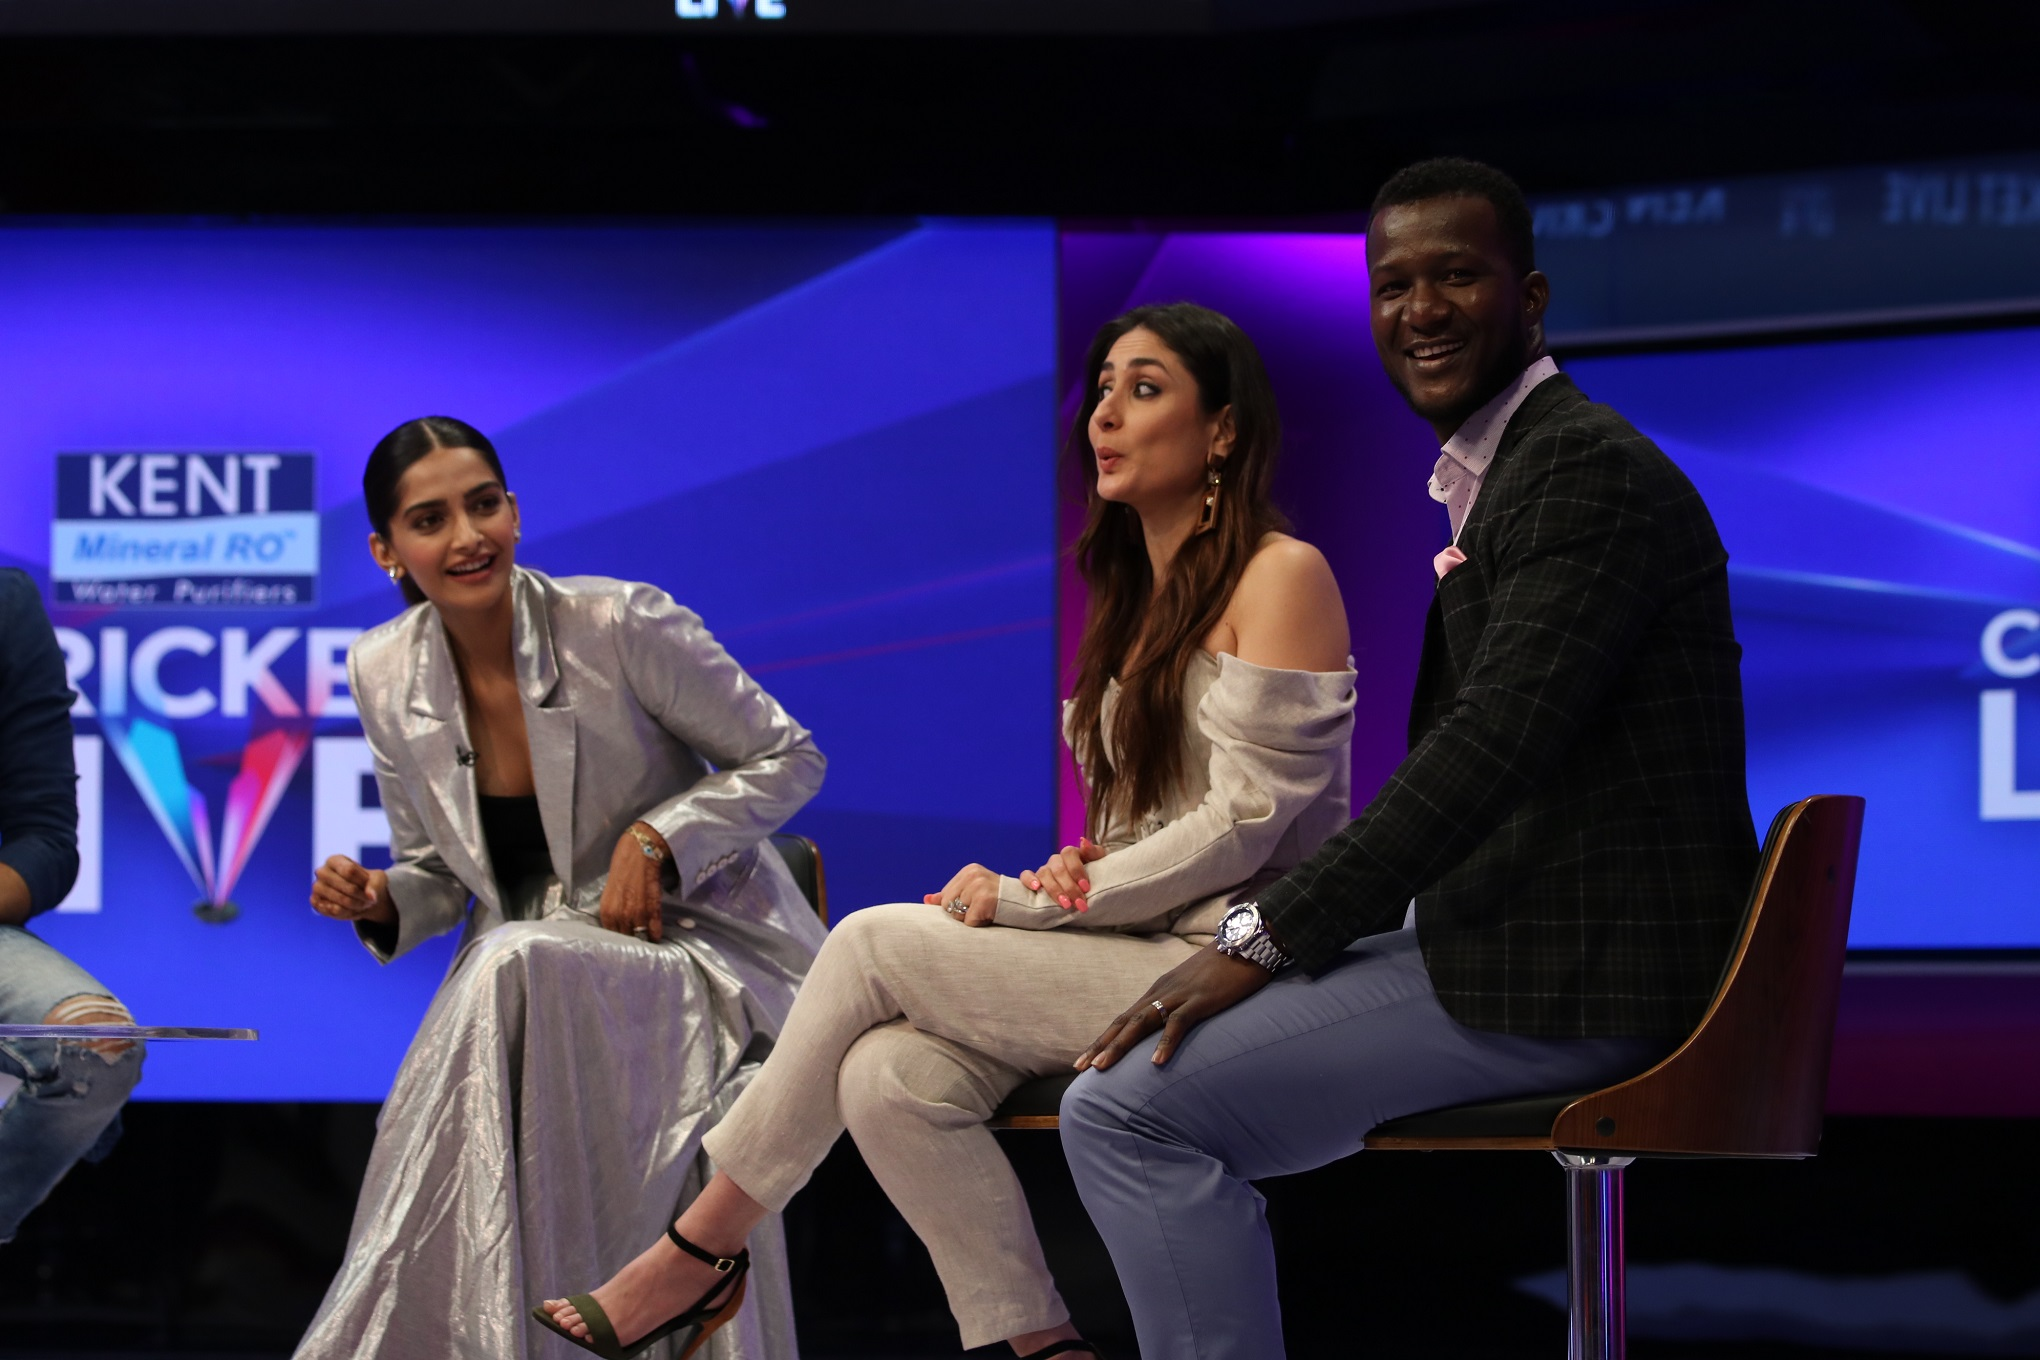 sonam-kapoor-kareena-kapoor-khan-and-darren-sammy-at-kent-cricket-live-on-star-sports-network